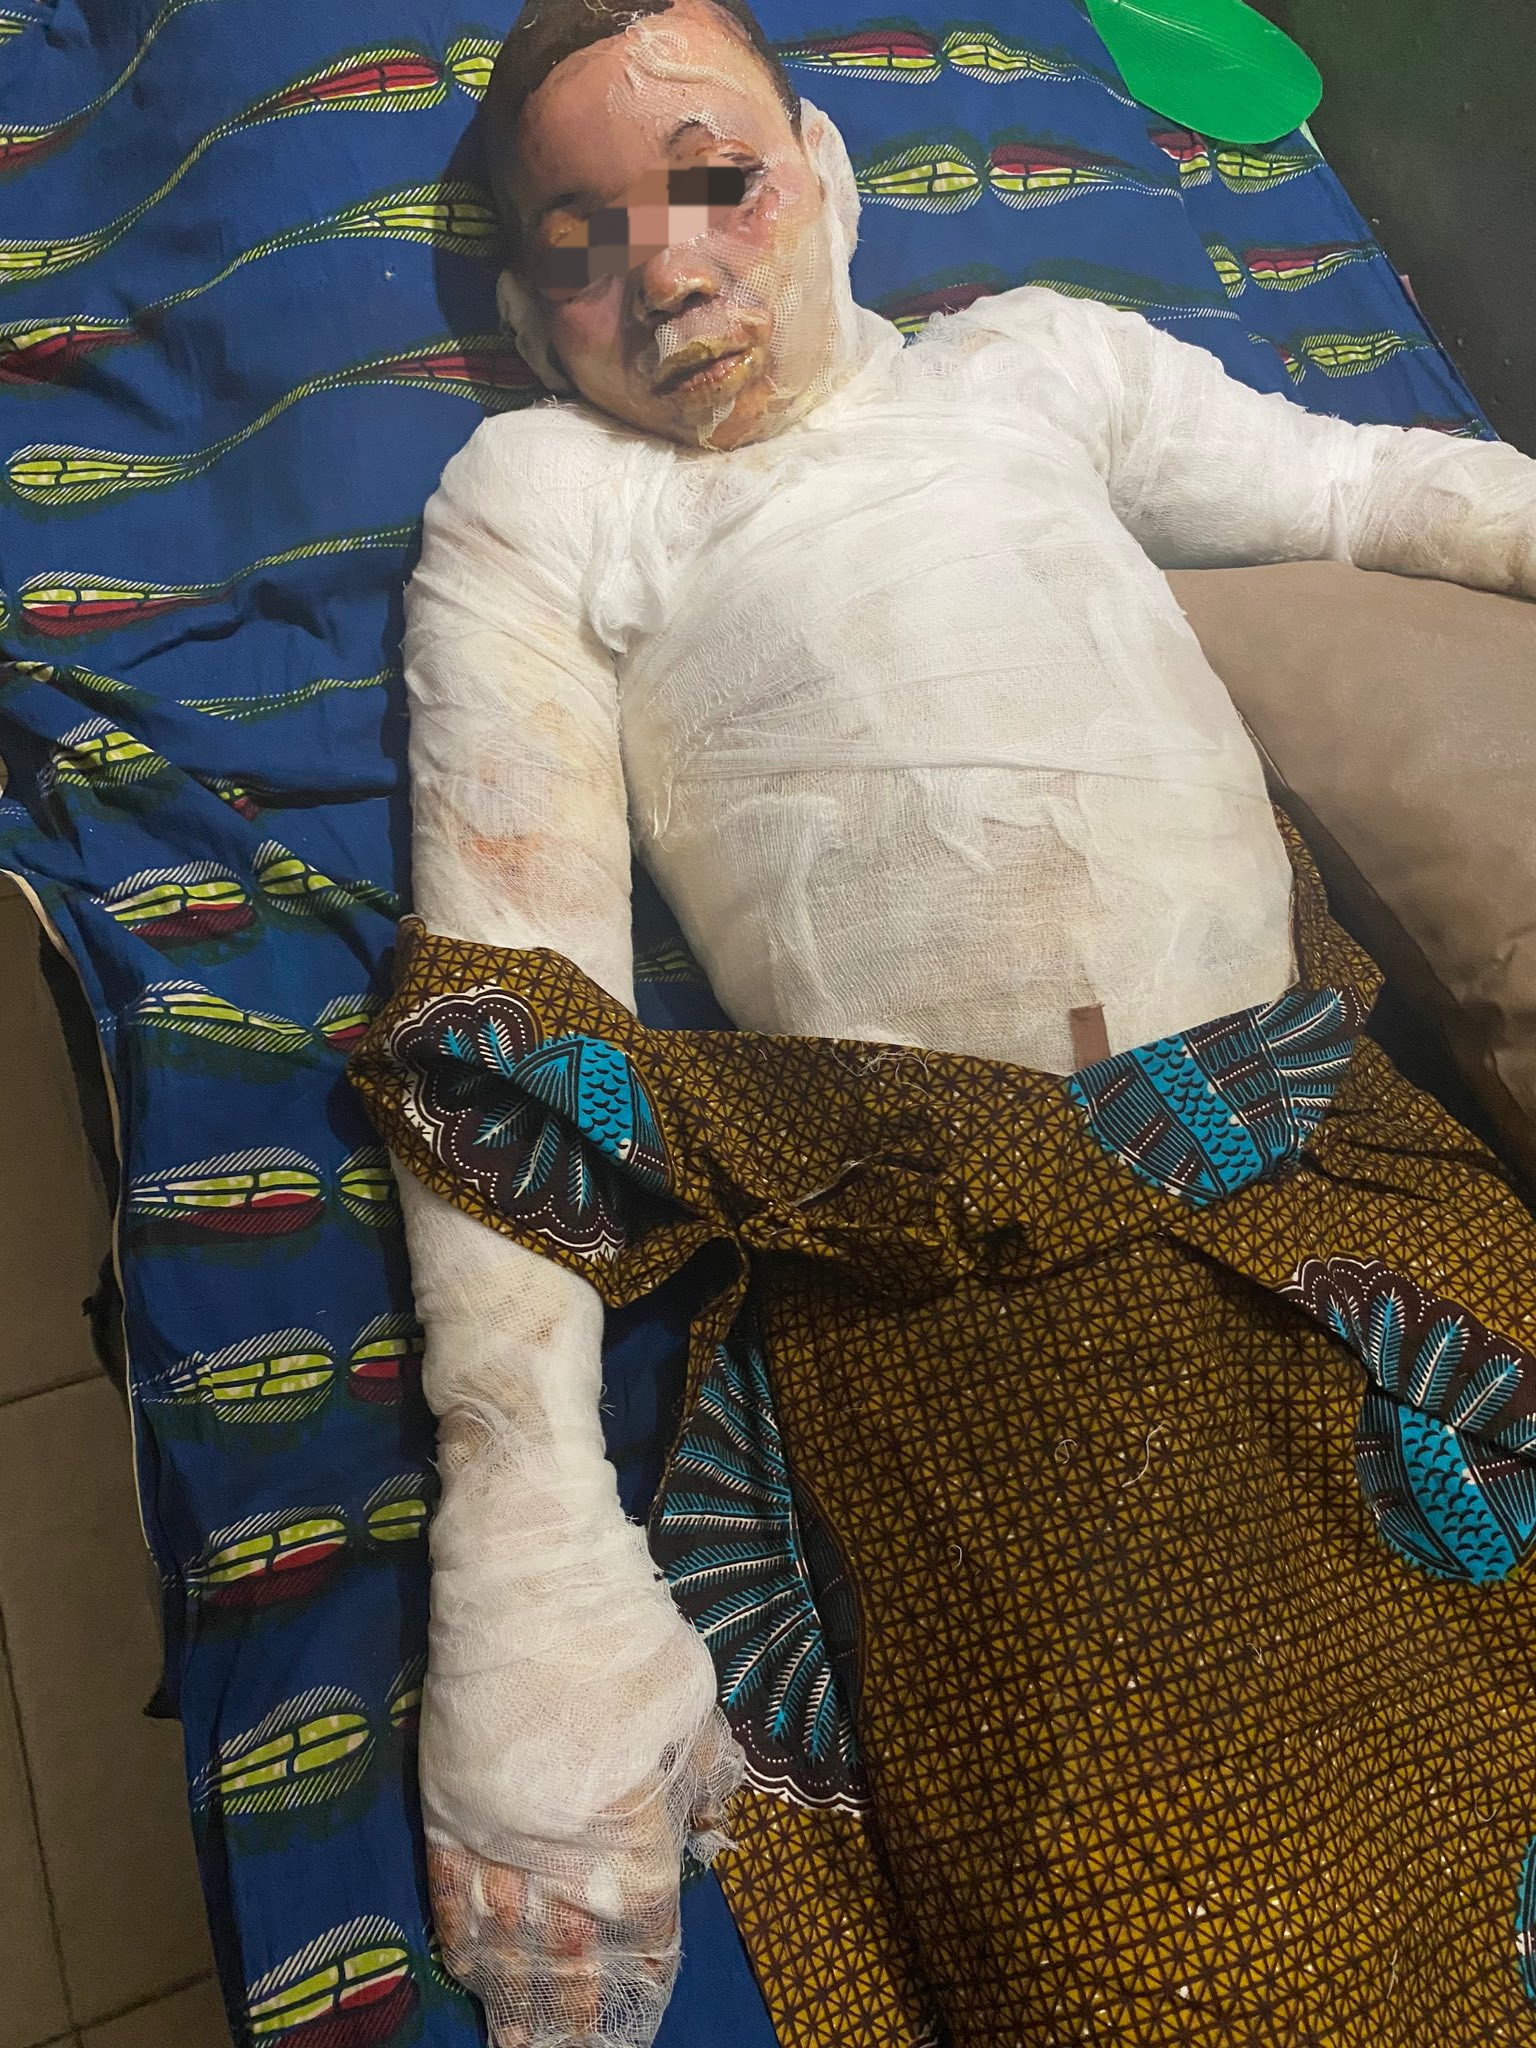 Two brothers suffer severe burns as fire engulfs their family home (graphic photos)